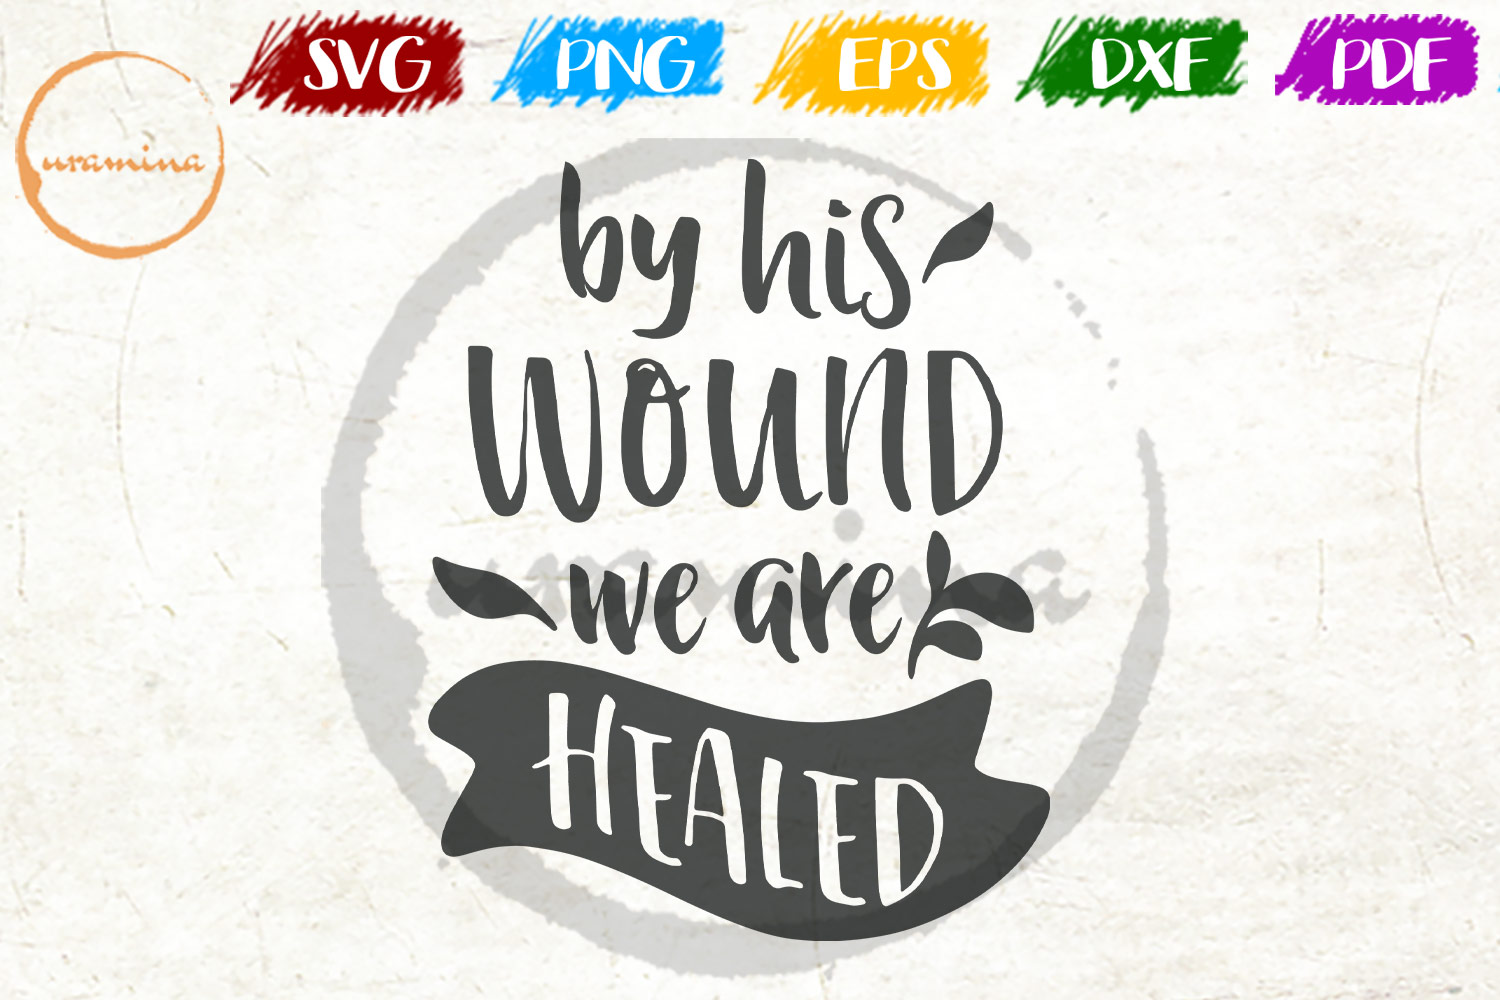 By His Wound We Are Healed Graphic By Uramina Creative Fabrica